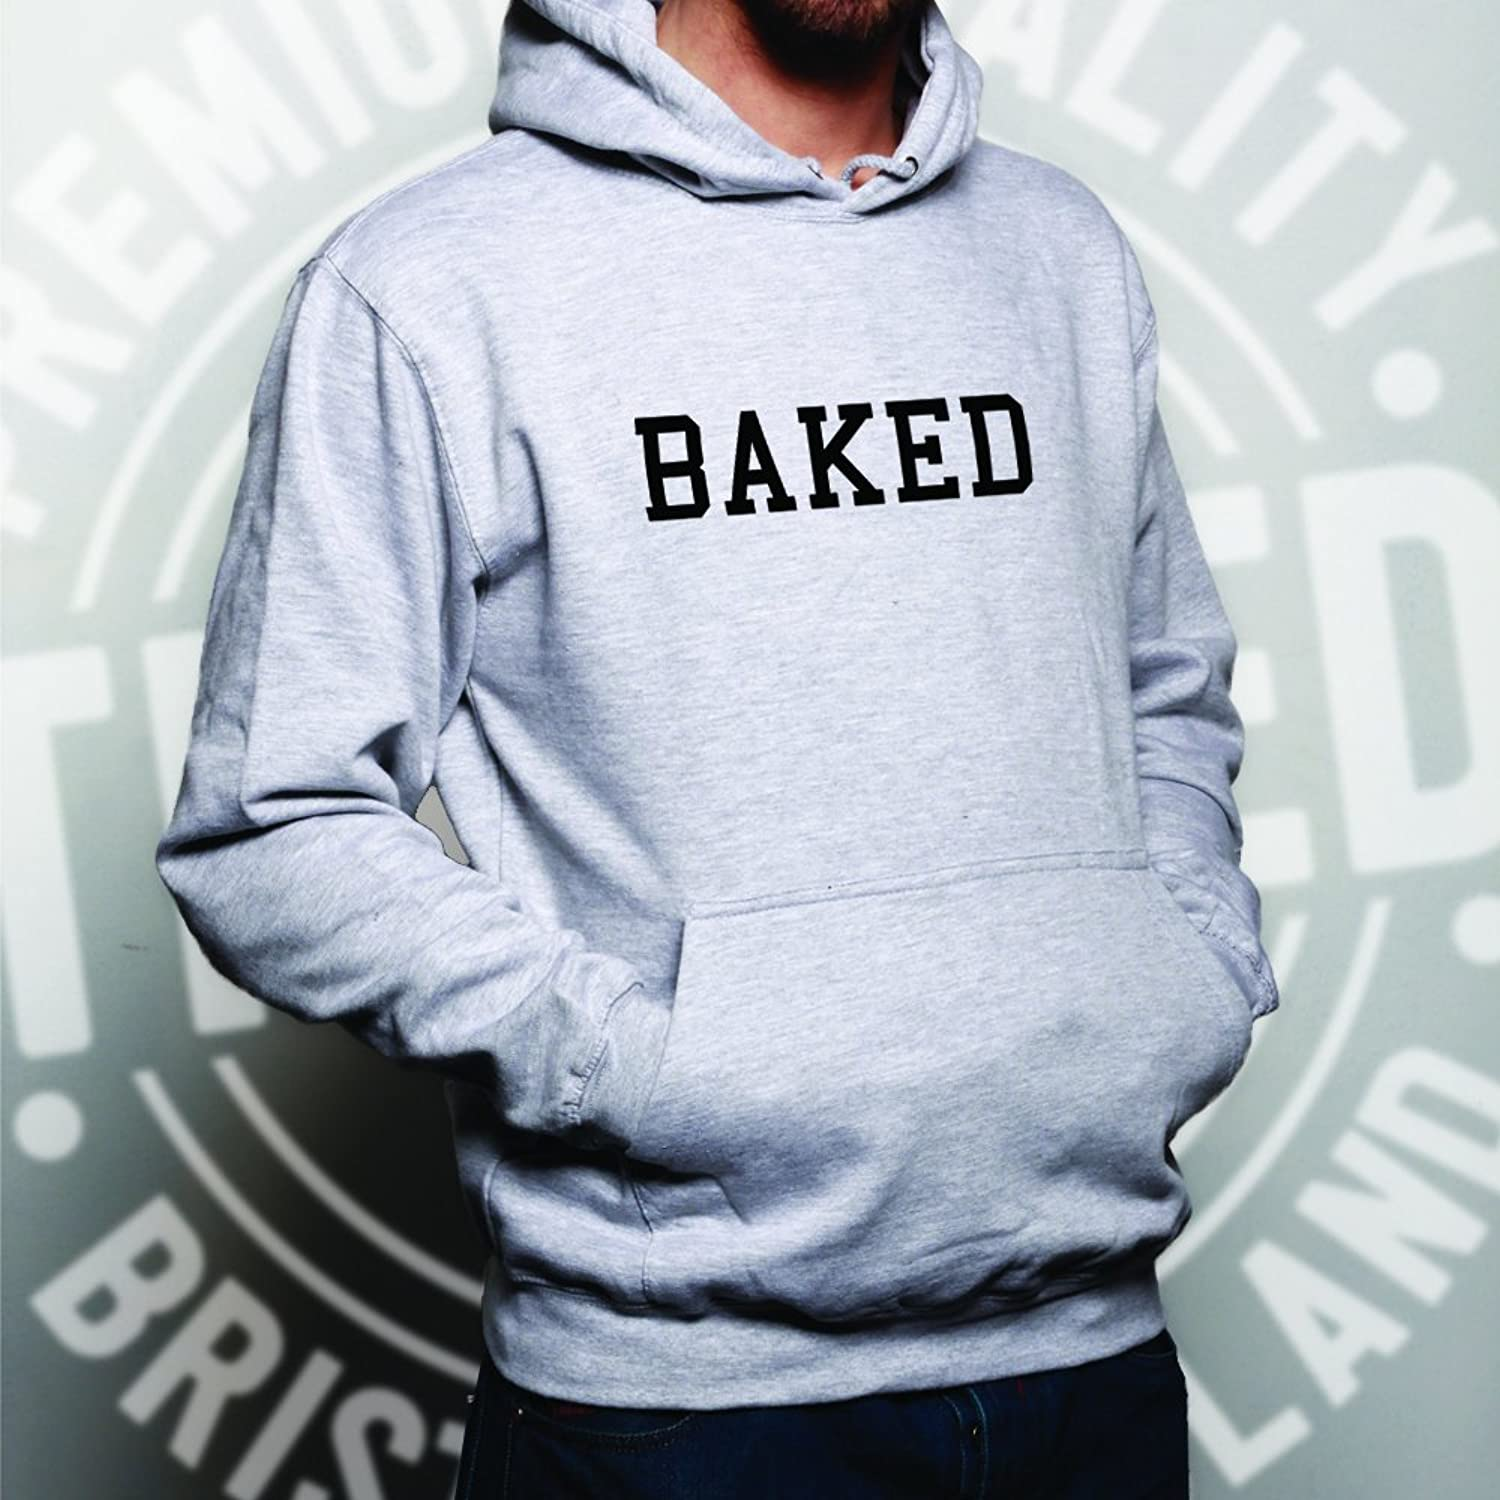 Tim And Ted Baked Hipster Fashion SWAG Dope Hype Cool Funny Slogan Funky  Social Media Cool Safe Trendy Teens Birthday Unisex Hoodie Cool Birthday  Gift ...